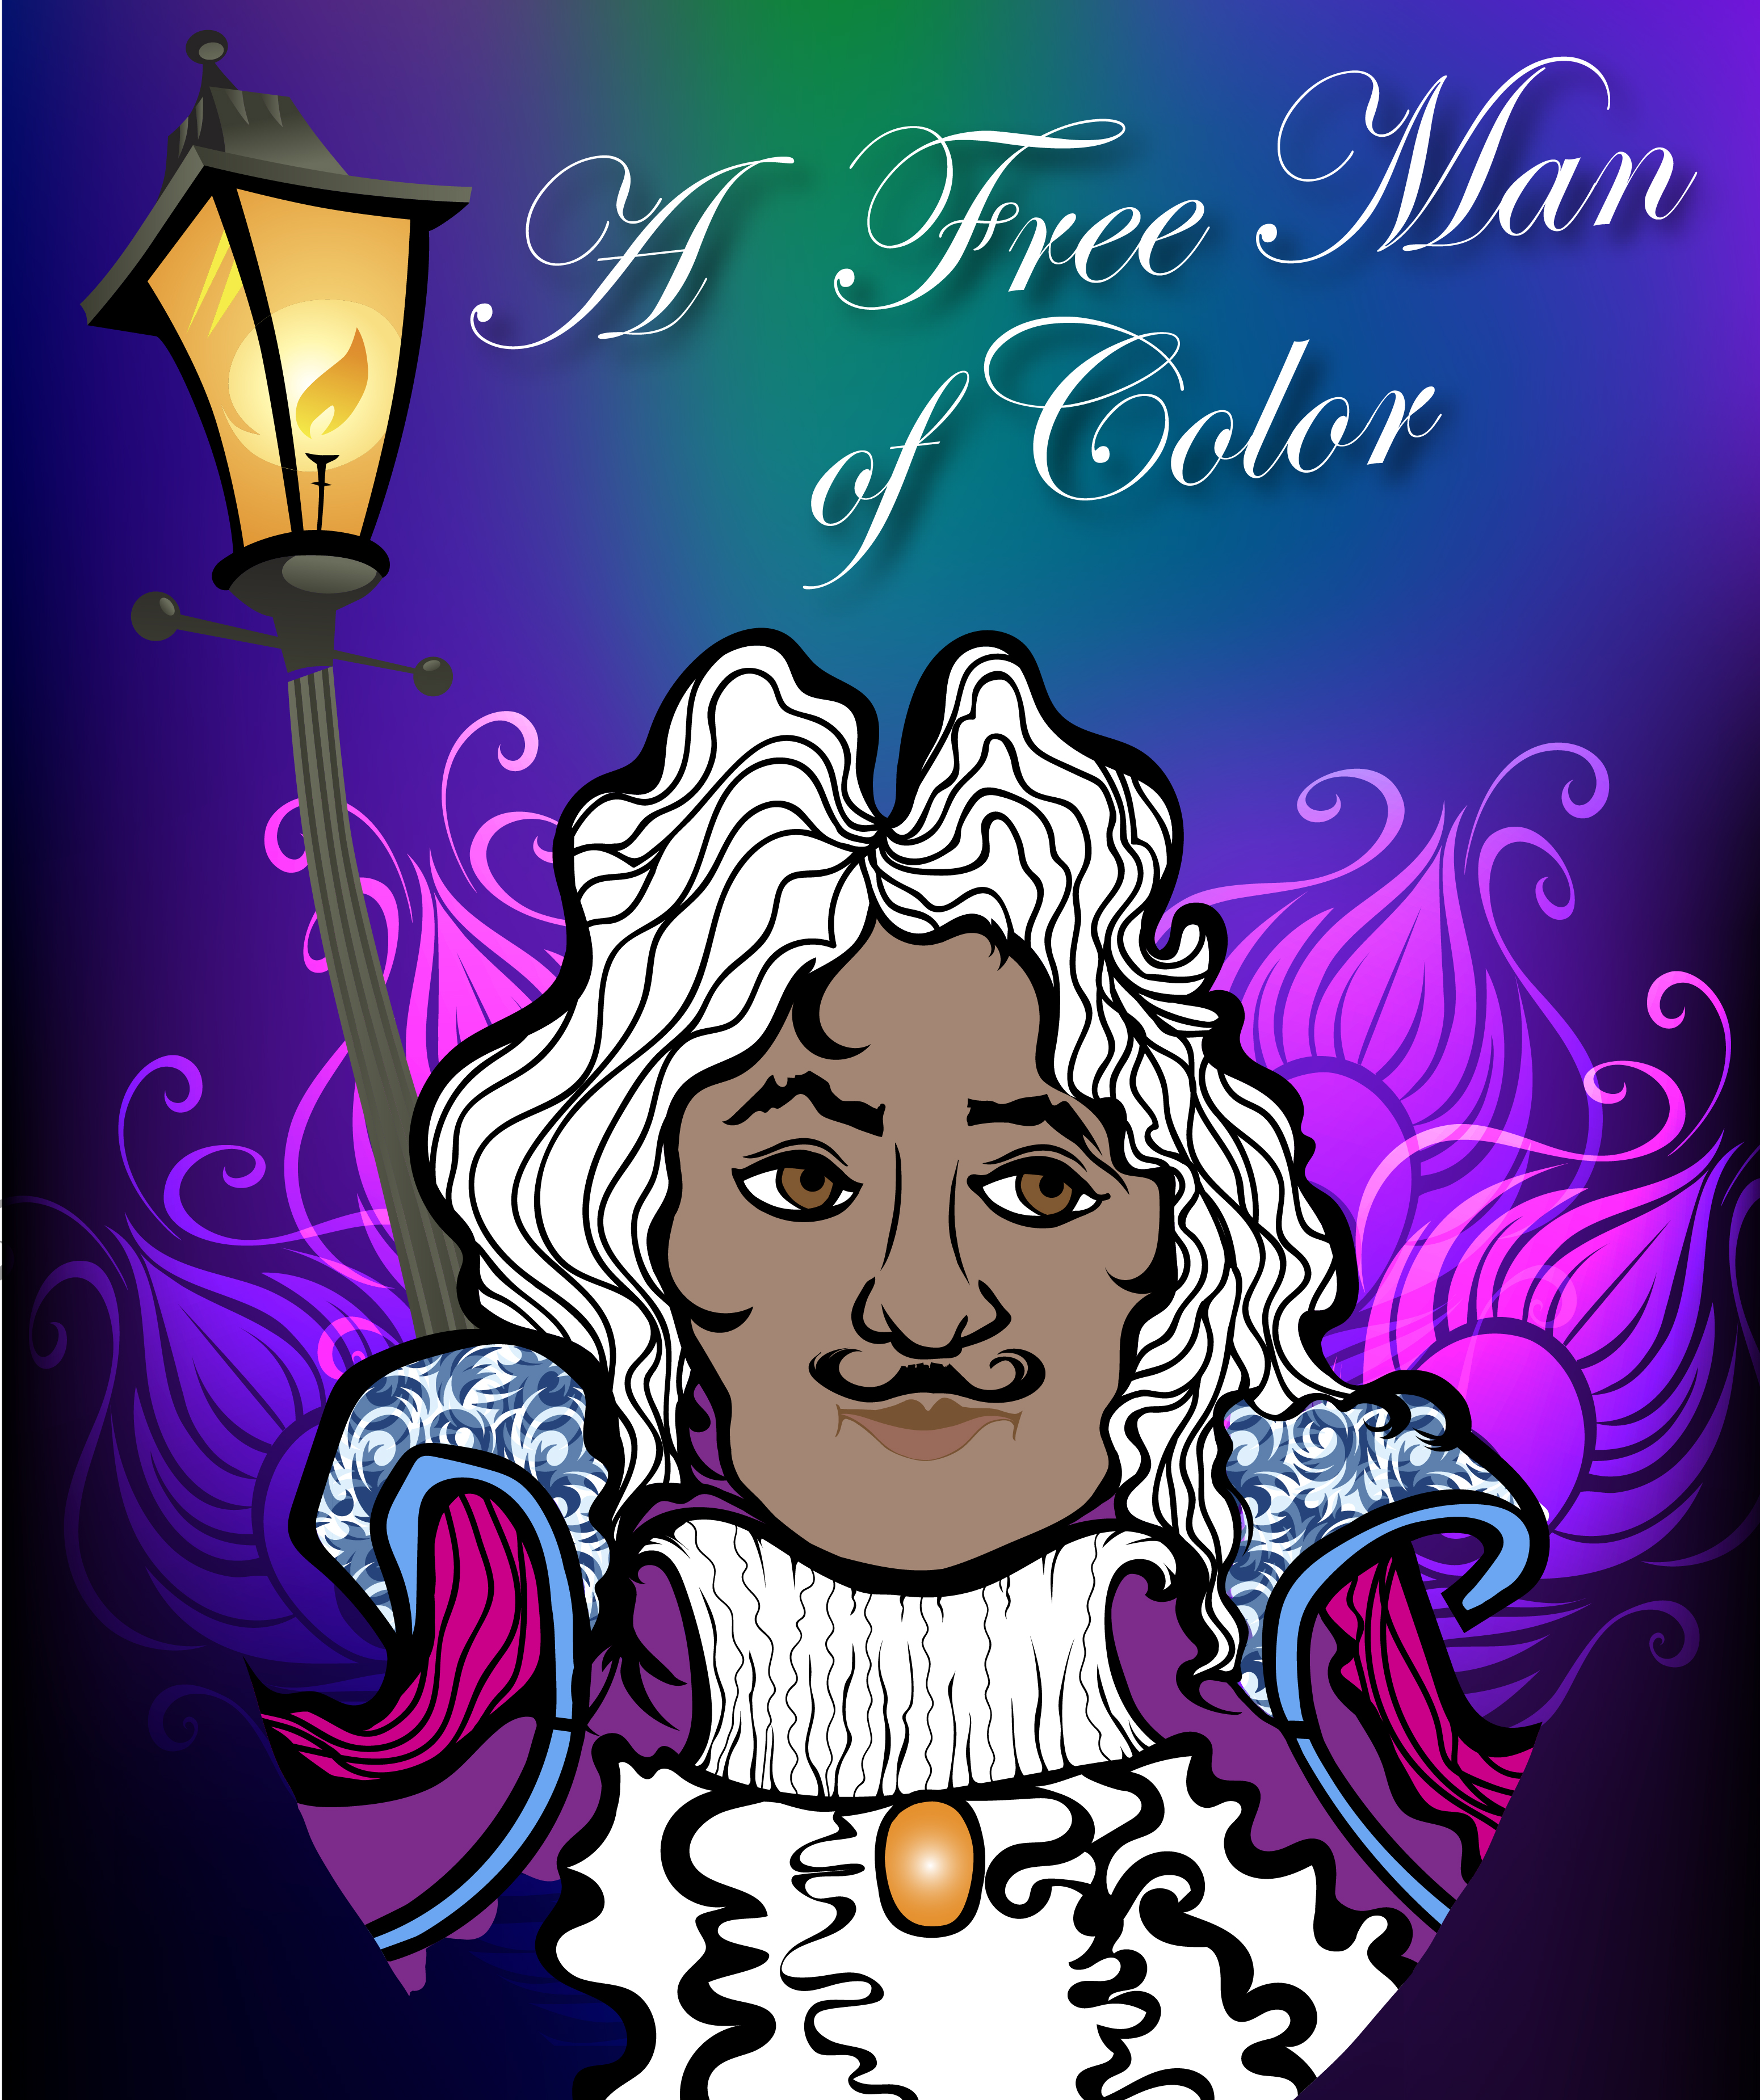 A Free Man of Color runs April 19 - April 29